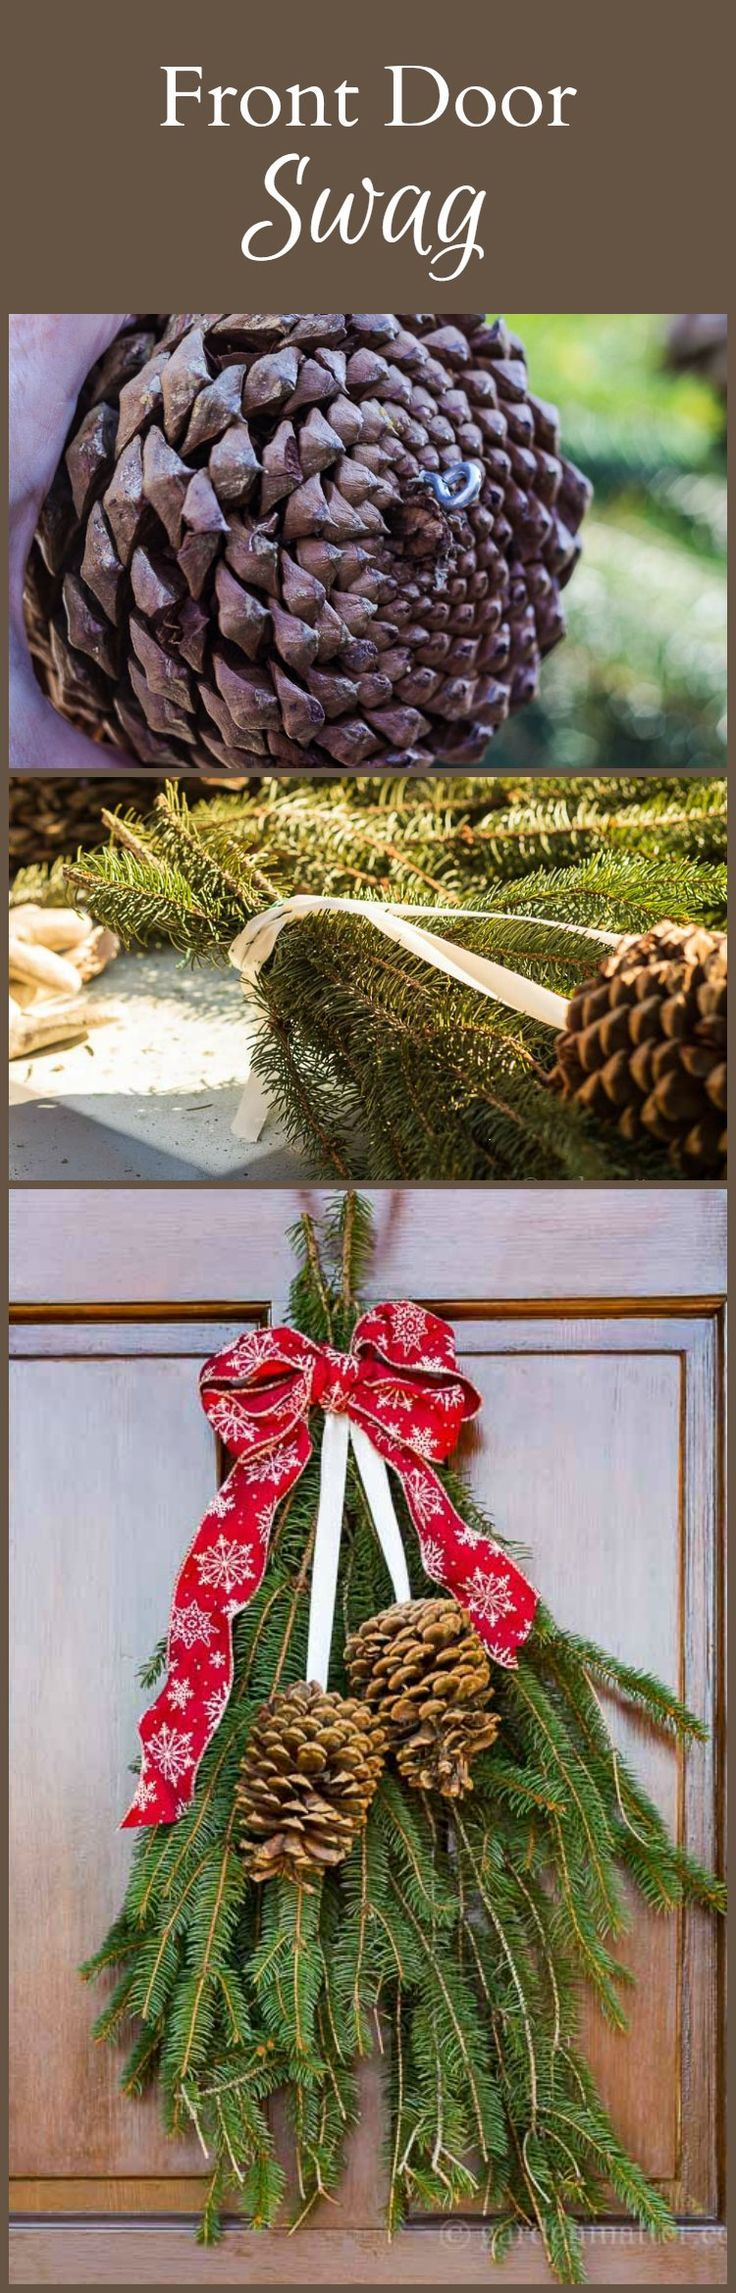 Learn how to make a front door swag with evergreens and pine cones for an easy alternative to a wreath this holiday season.